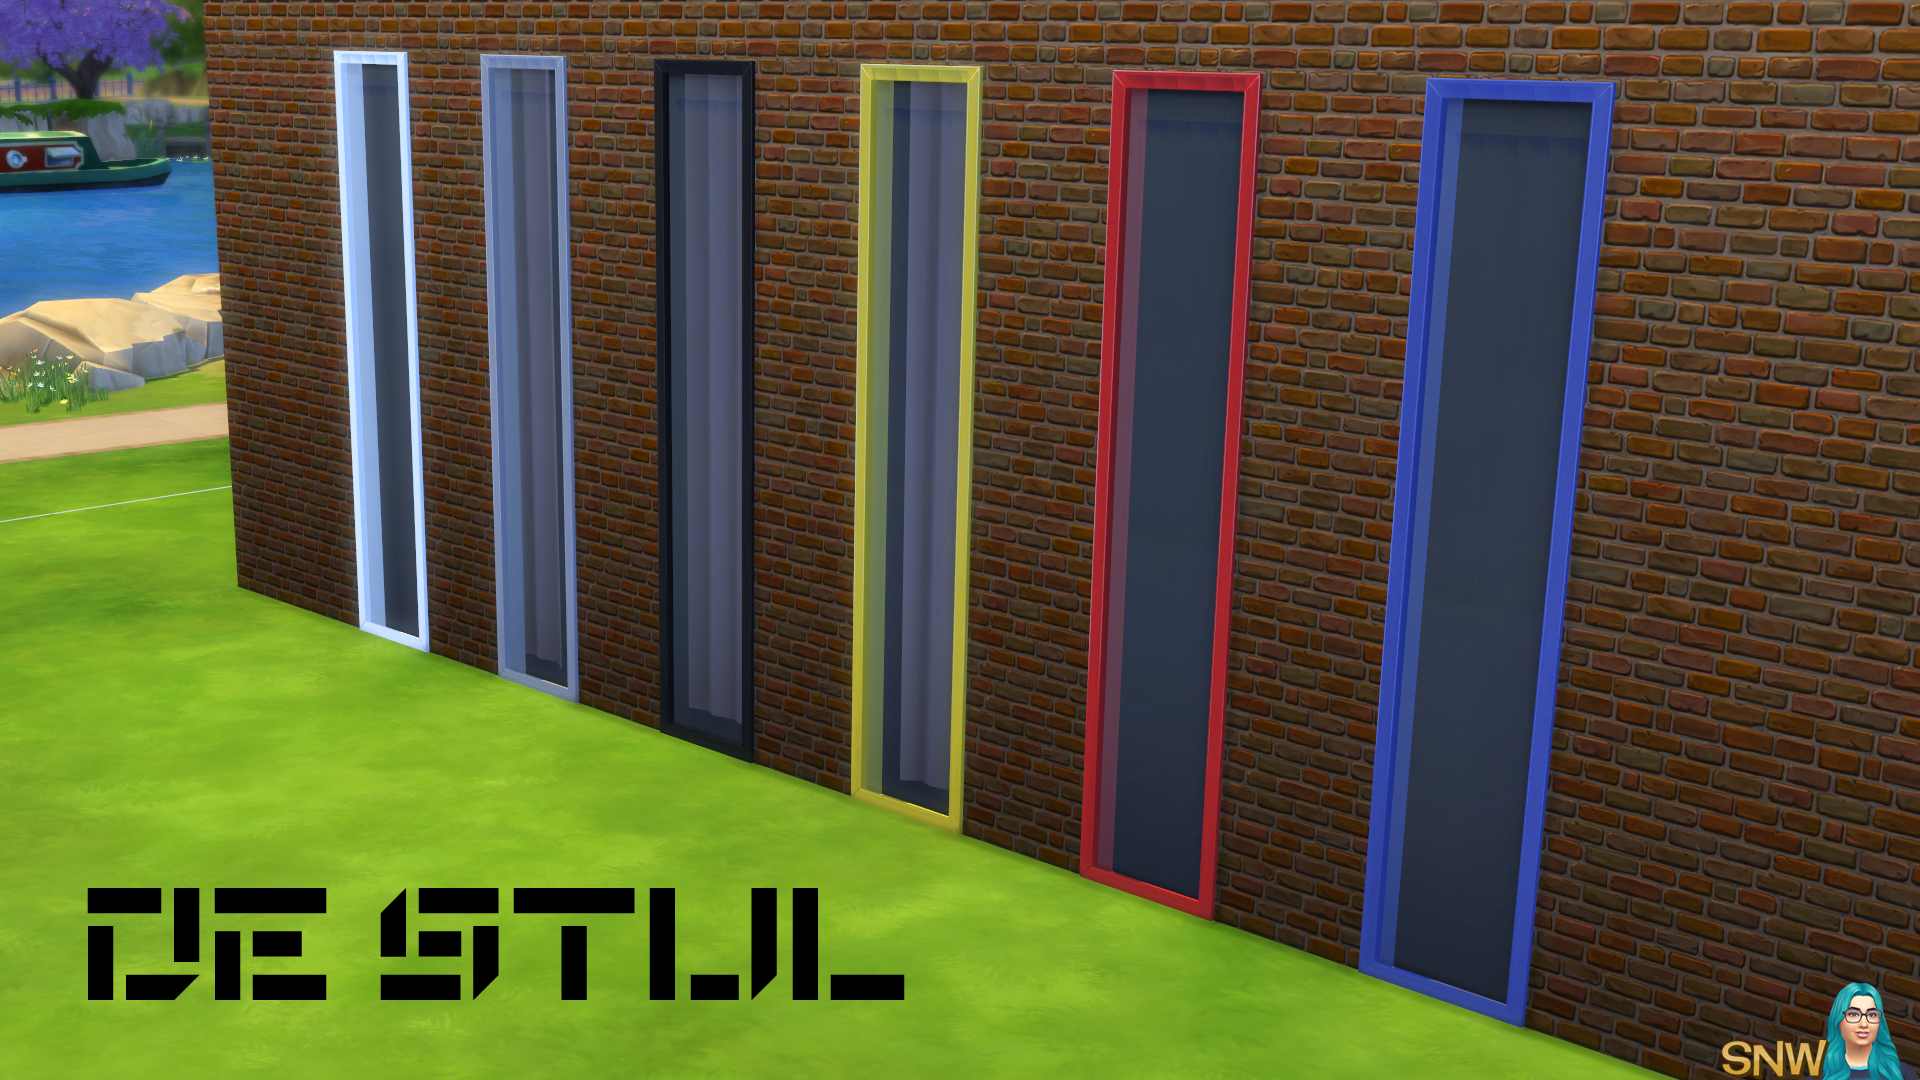 De Stijl Small Windows 3 Snw Simsnetwork Com